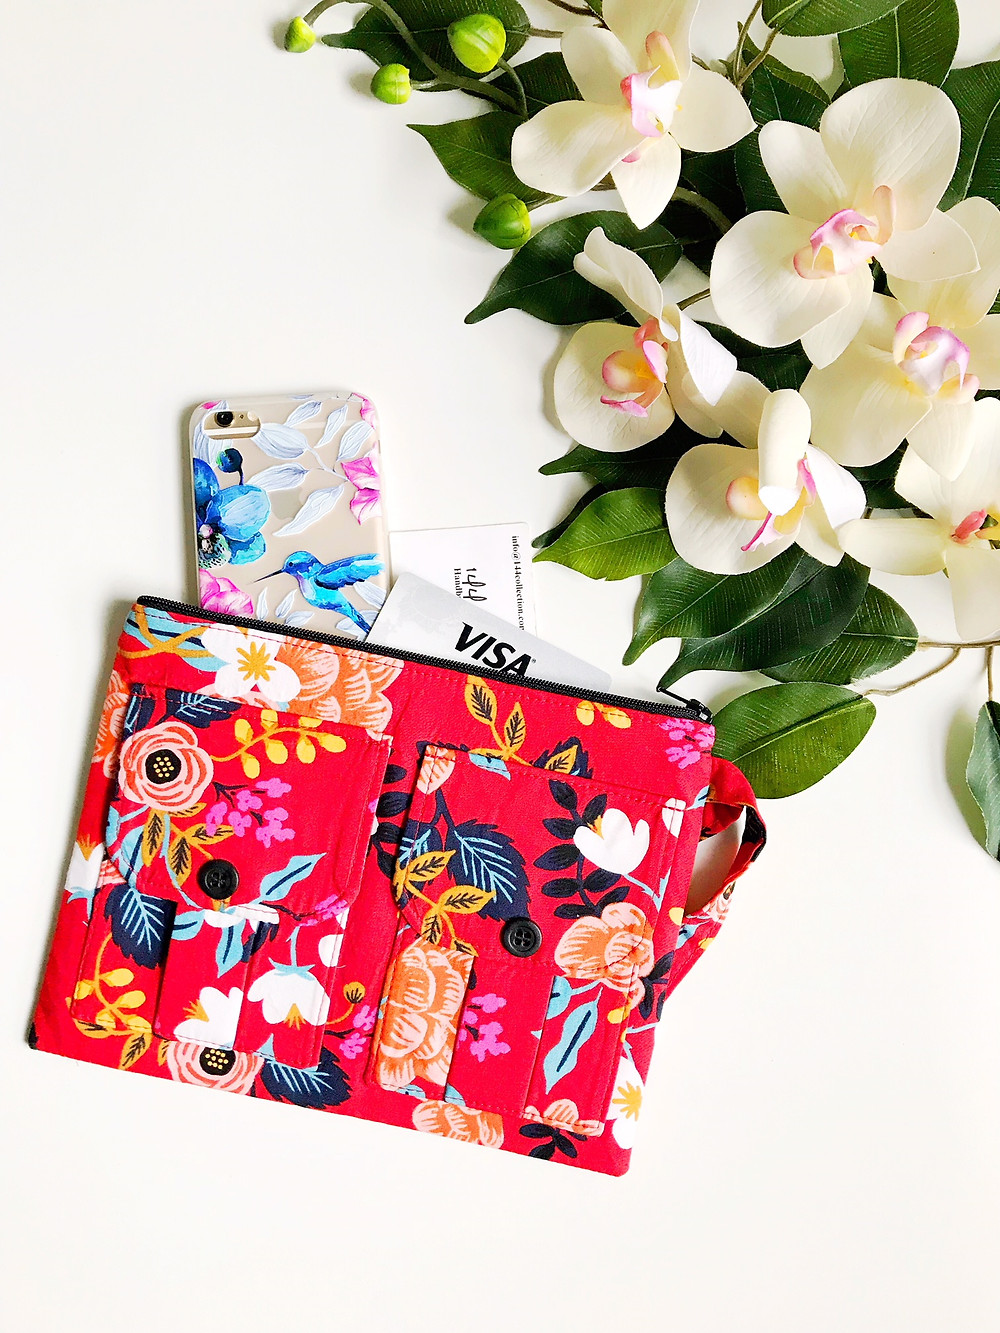 iPhone Wallets for Women  - Red Floral Print